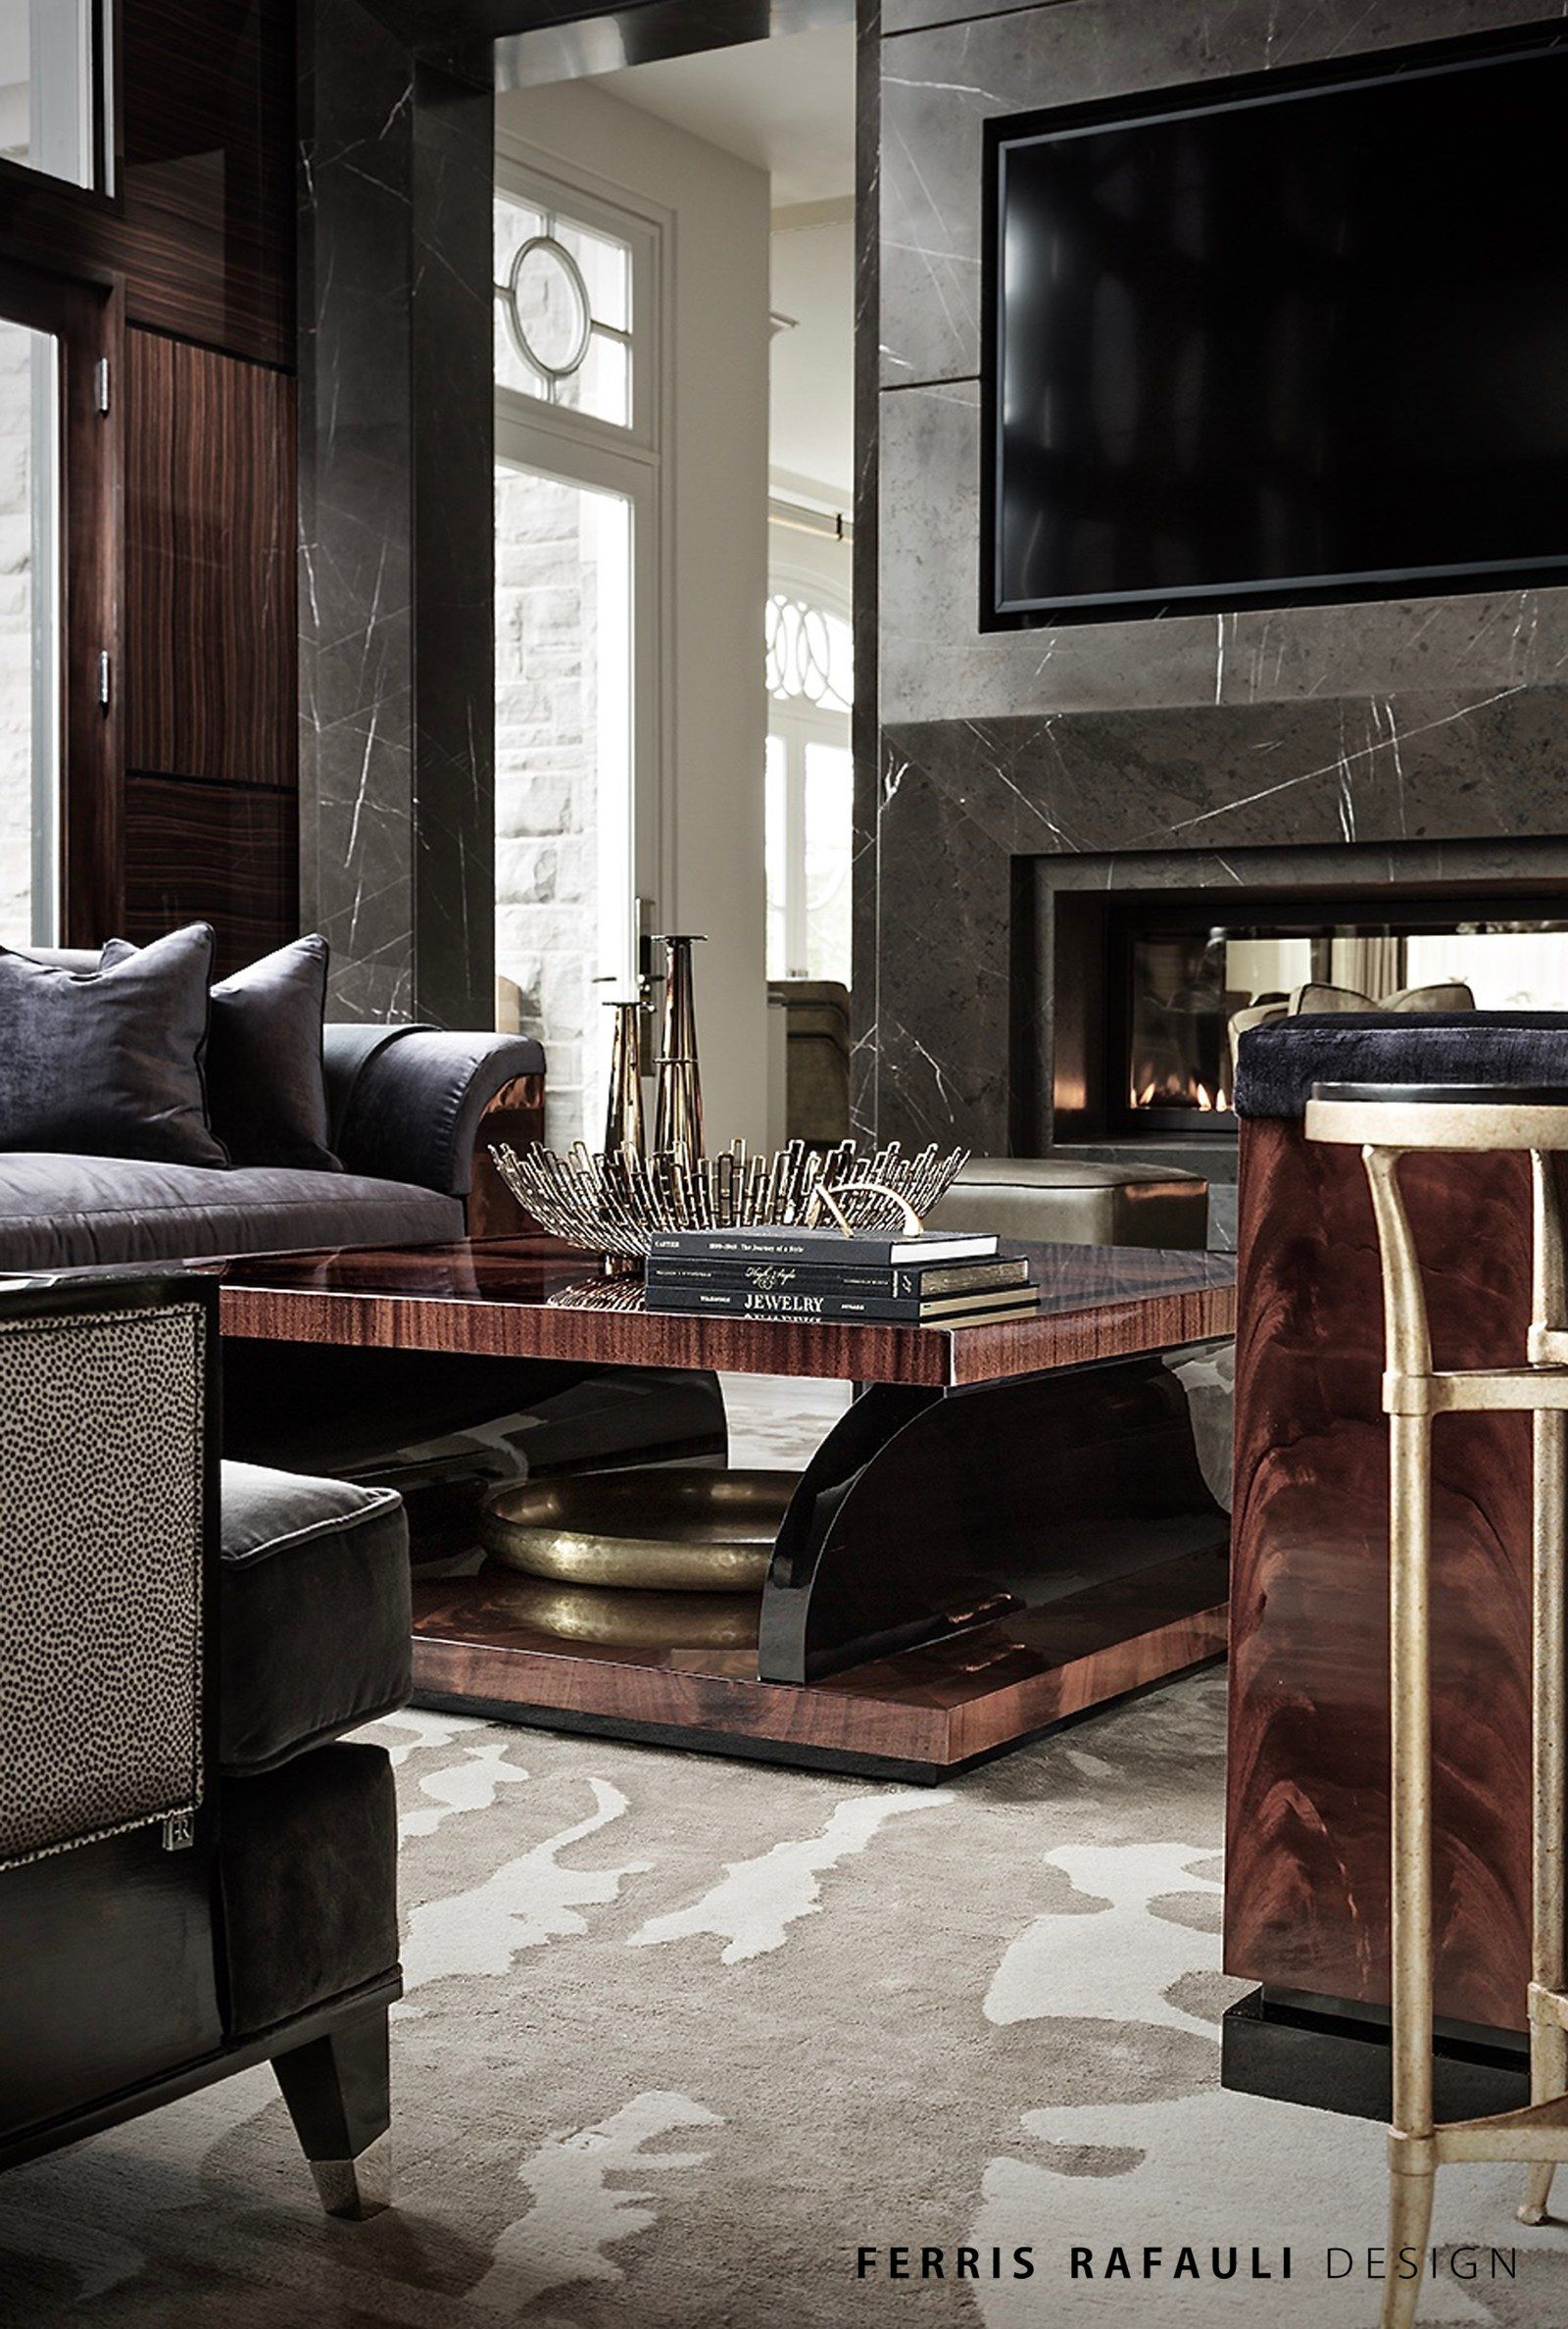 Nyc Loft Room Entertainment Wall Ideas With Fireplace Interior Design: Architecture By Ferris Rafauli